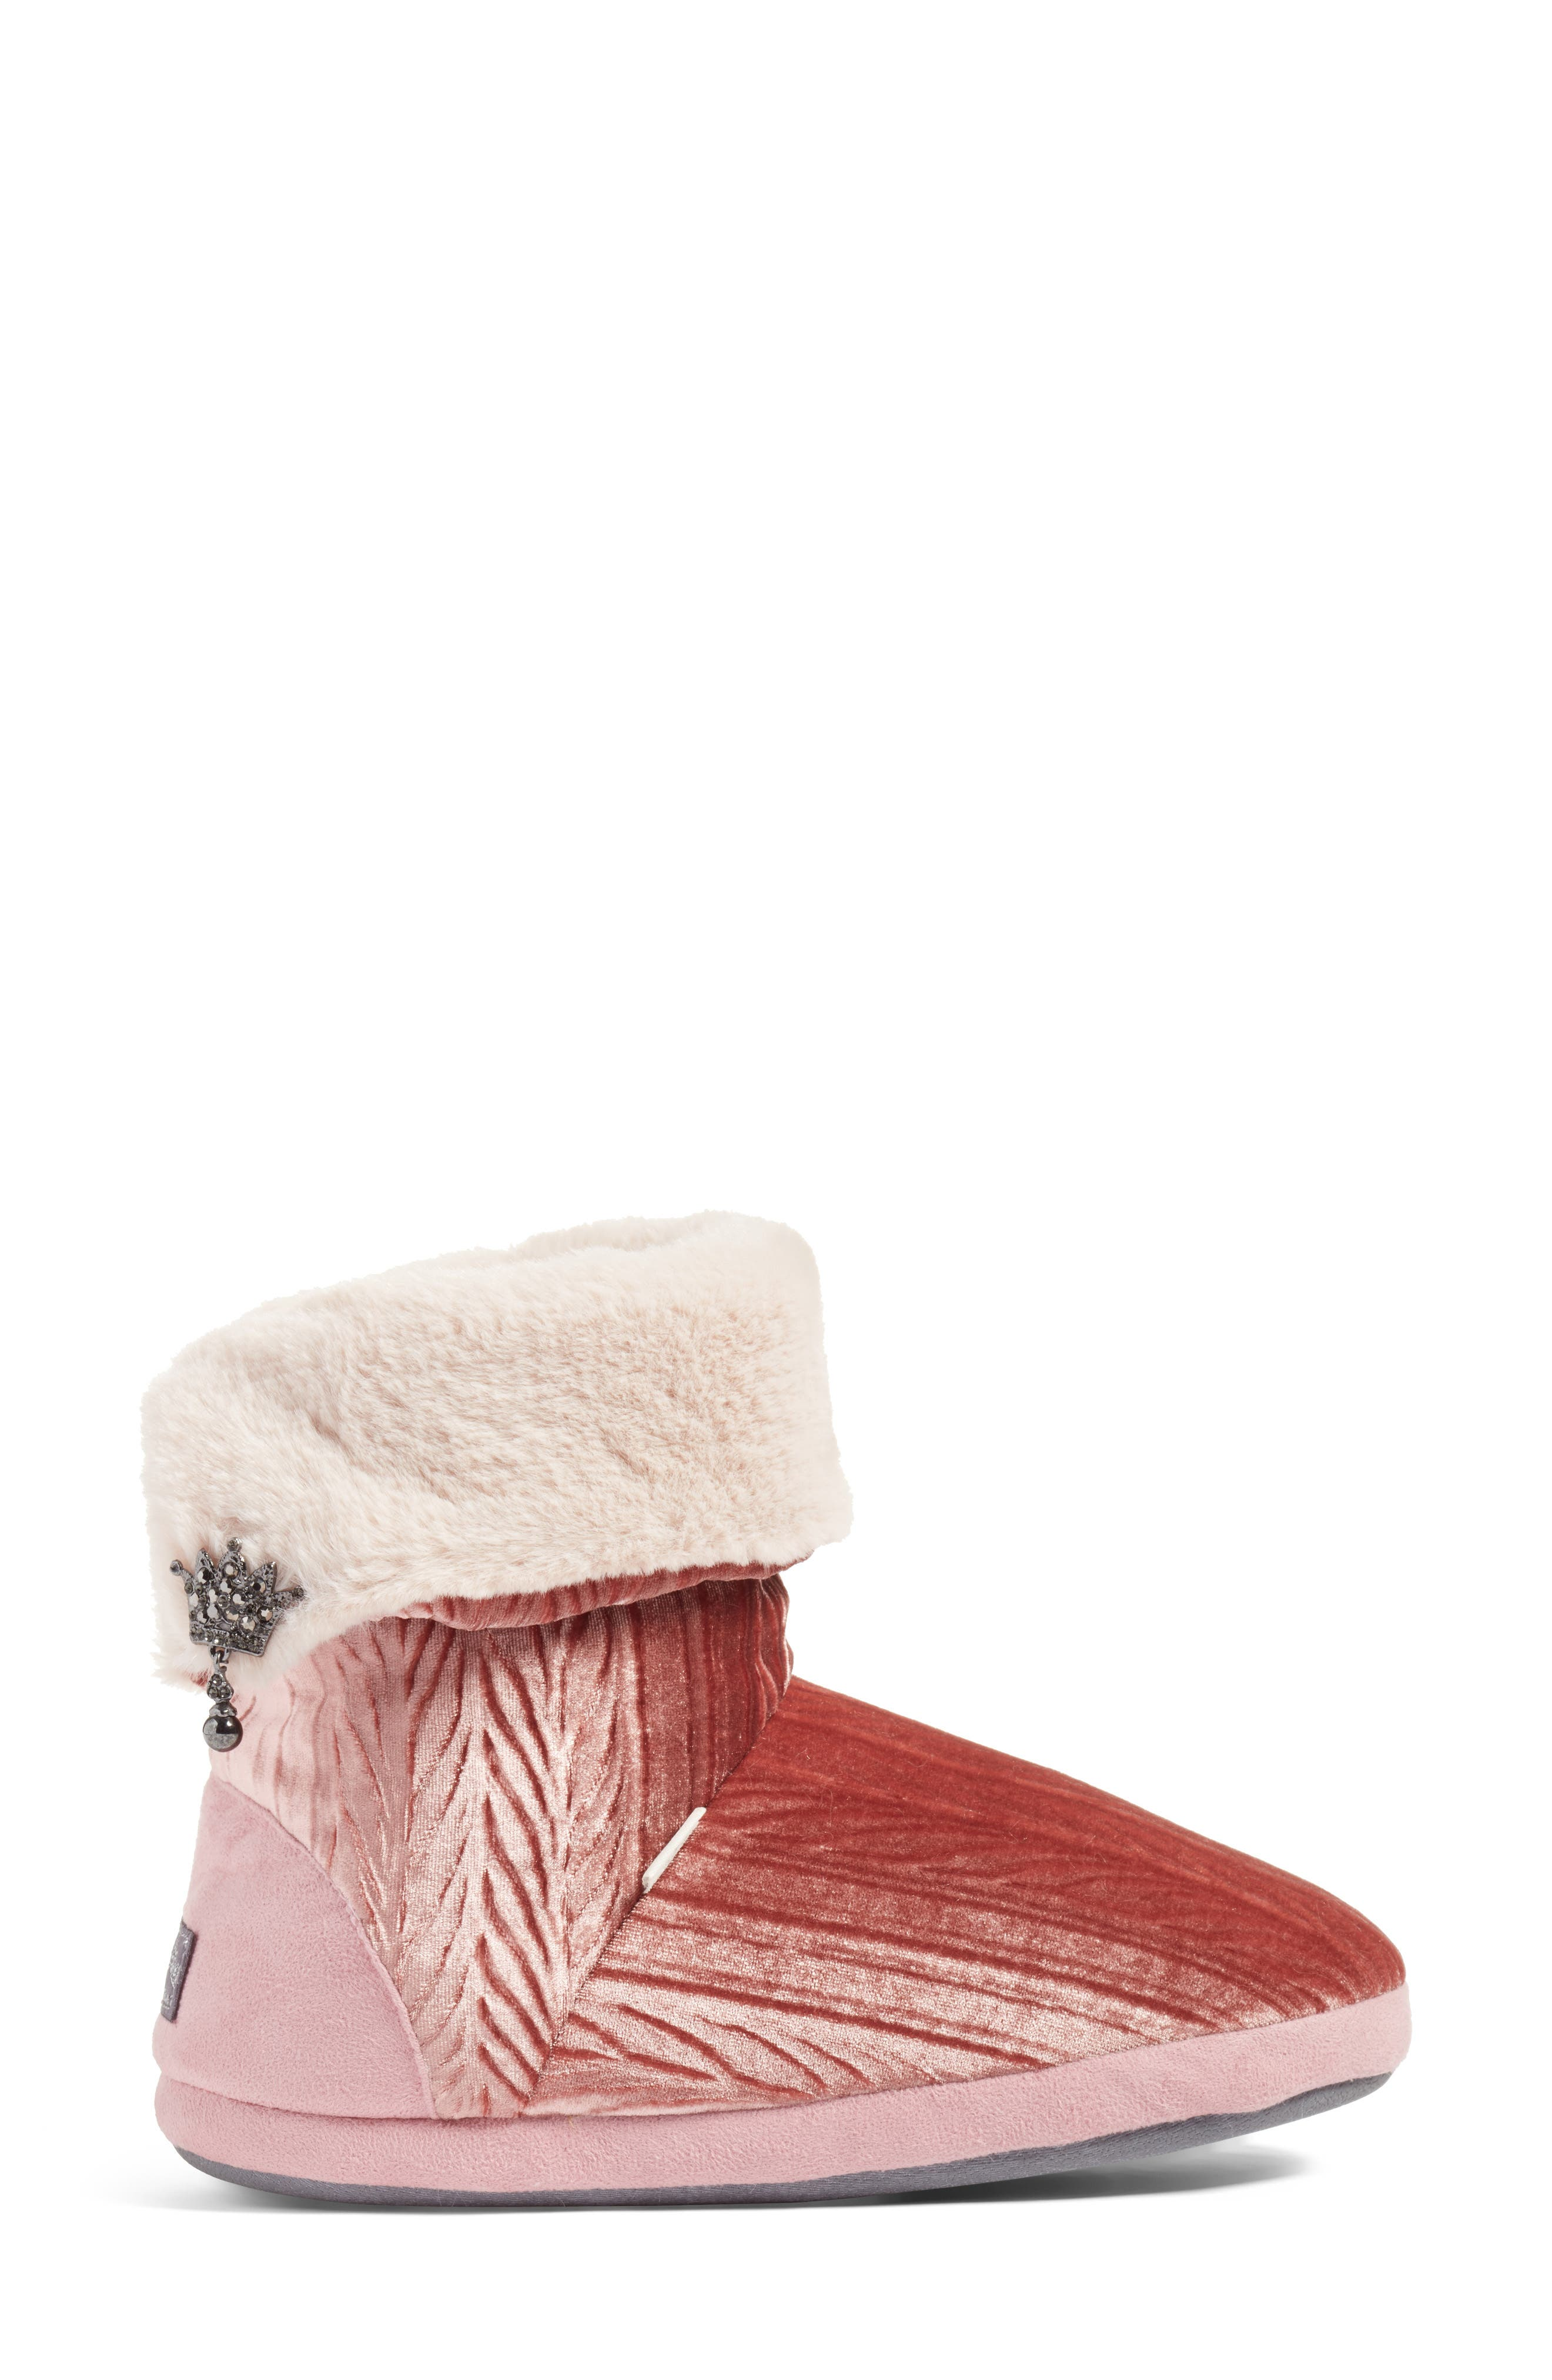 Velvet Bootie Slipper,                             Alternate thumbnail 2, color,                             Pink